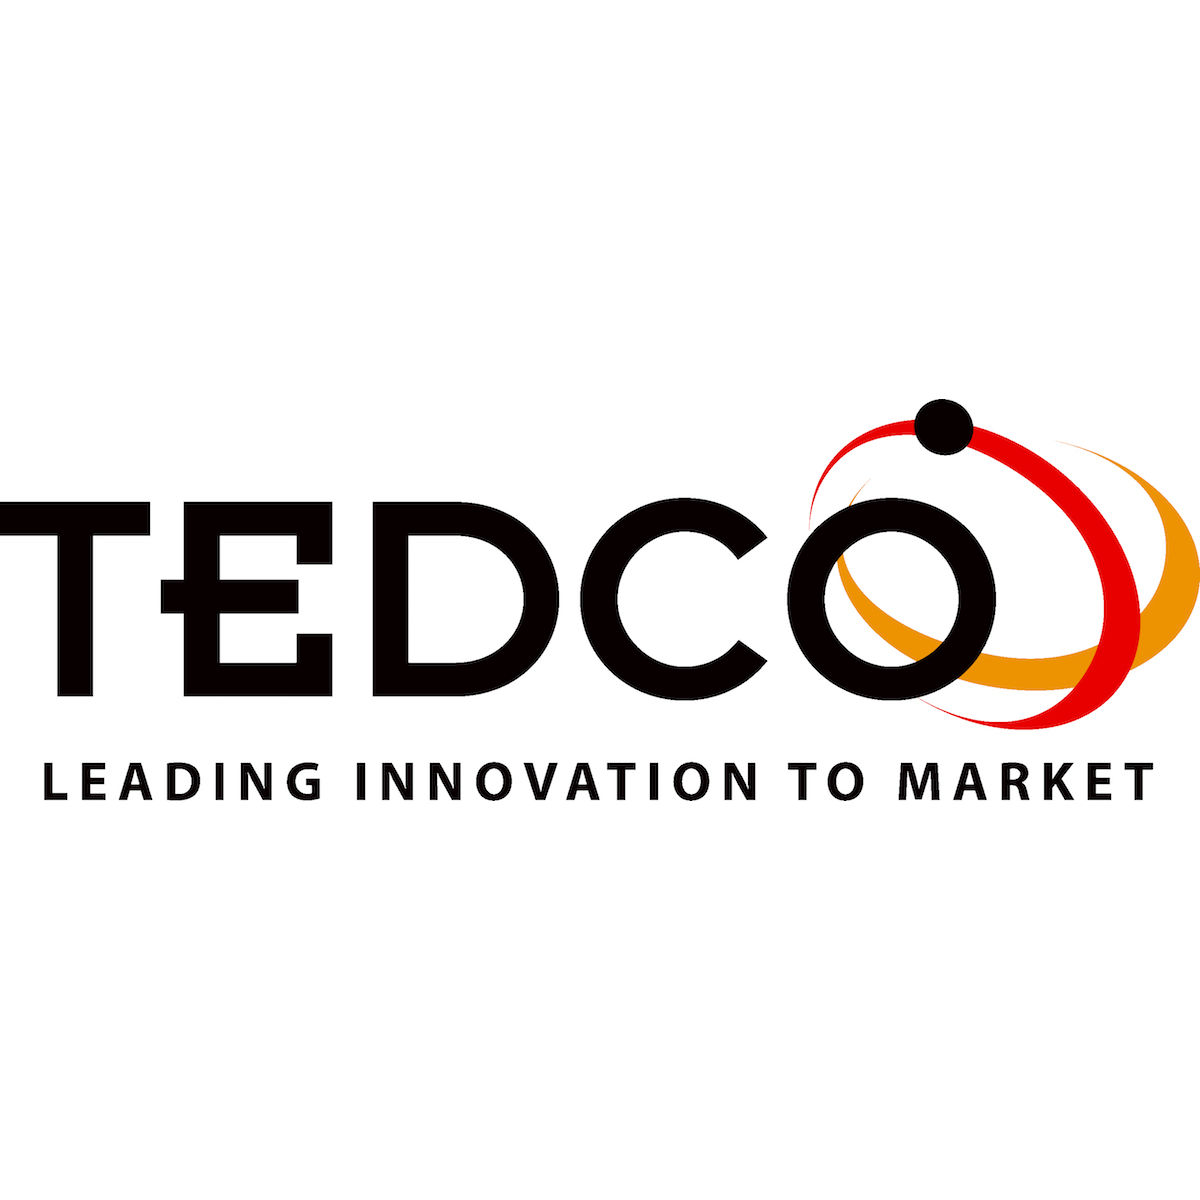 TEDCO Receives Federal Grant to Support High-Tech Startups